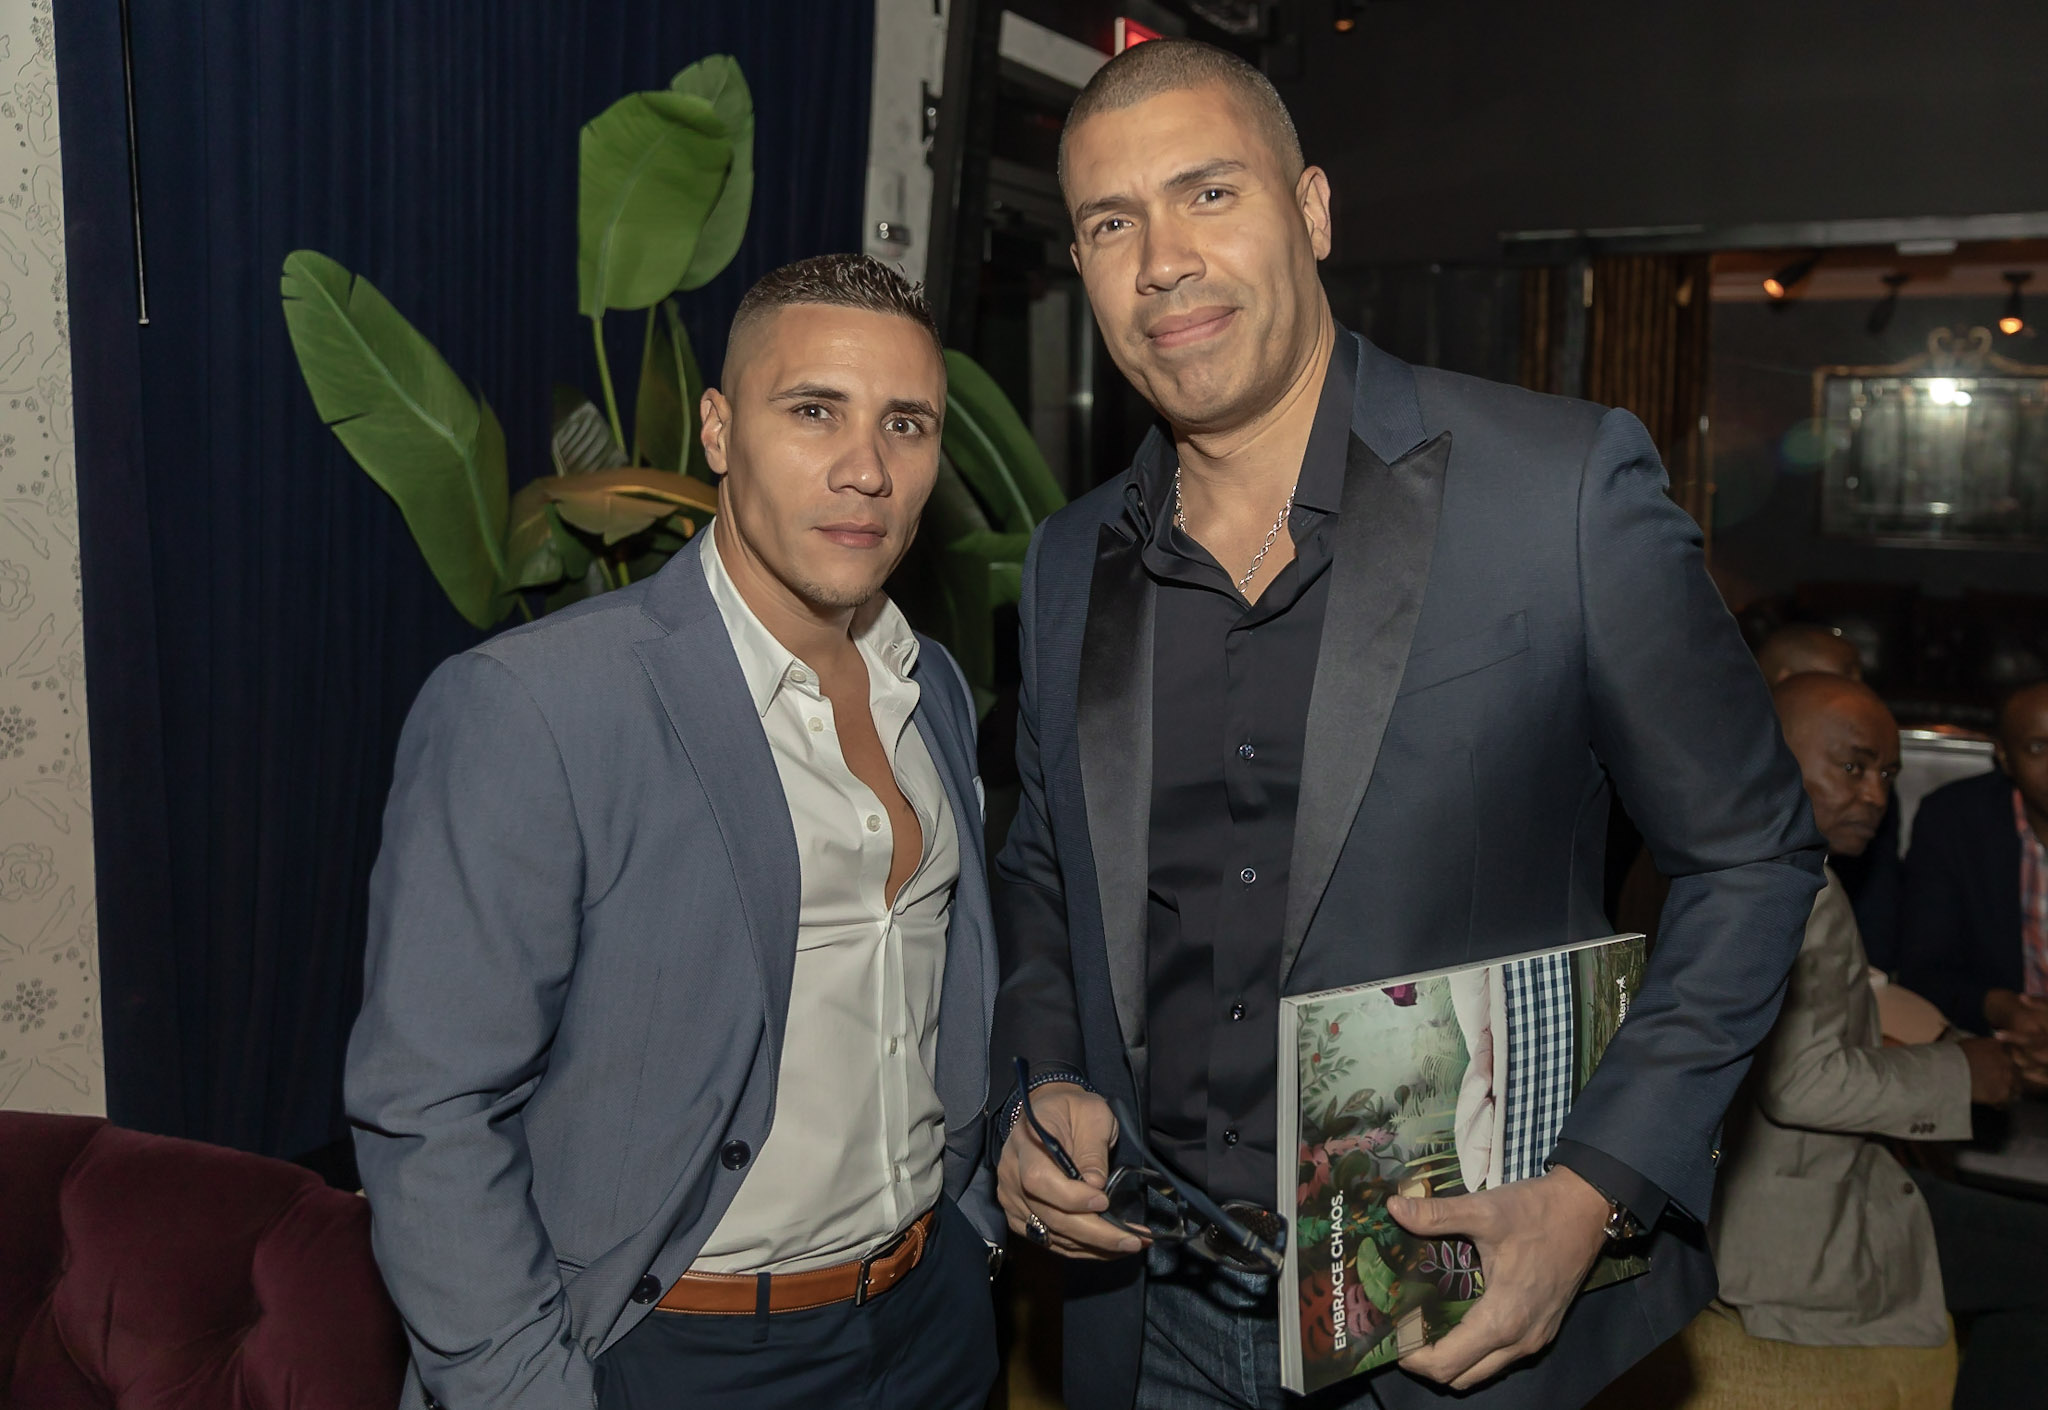 Spirit & Flesh Magazine Jussie Smollett cover event, David Tavarez & Daniel Acevedo by Kenneth de la Torre